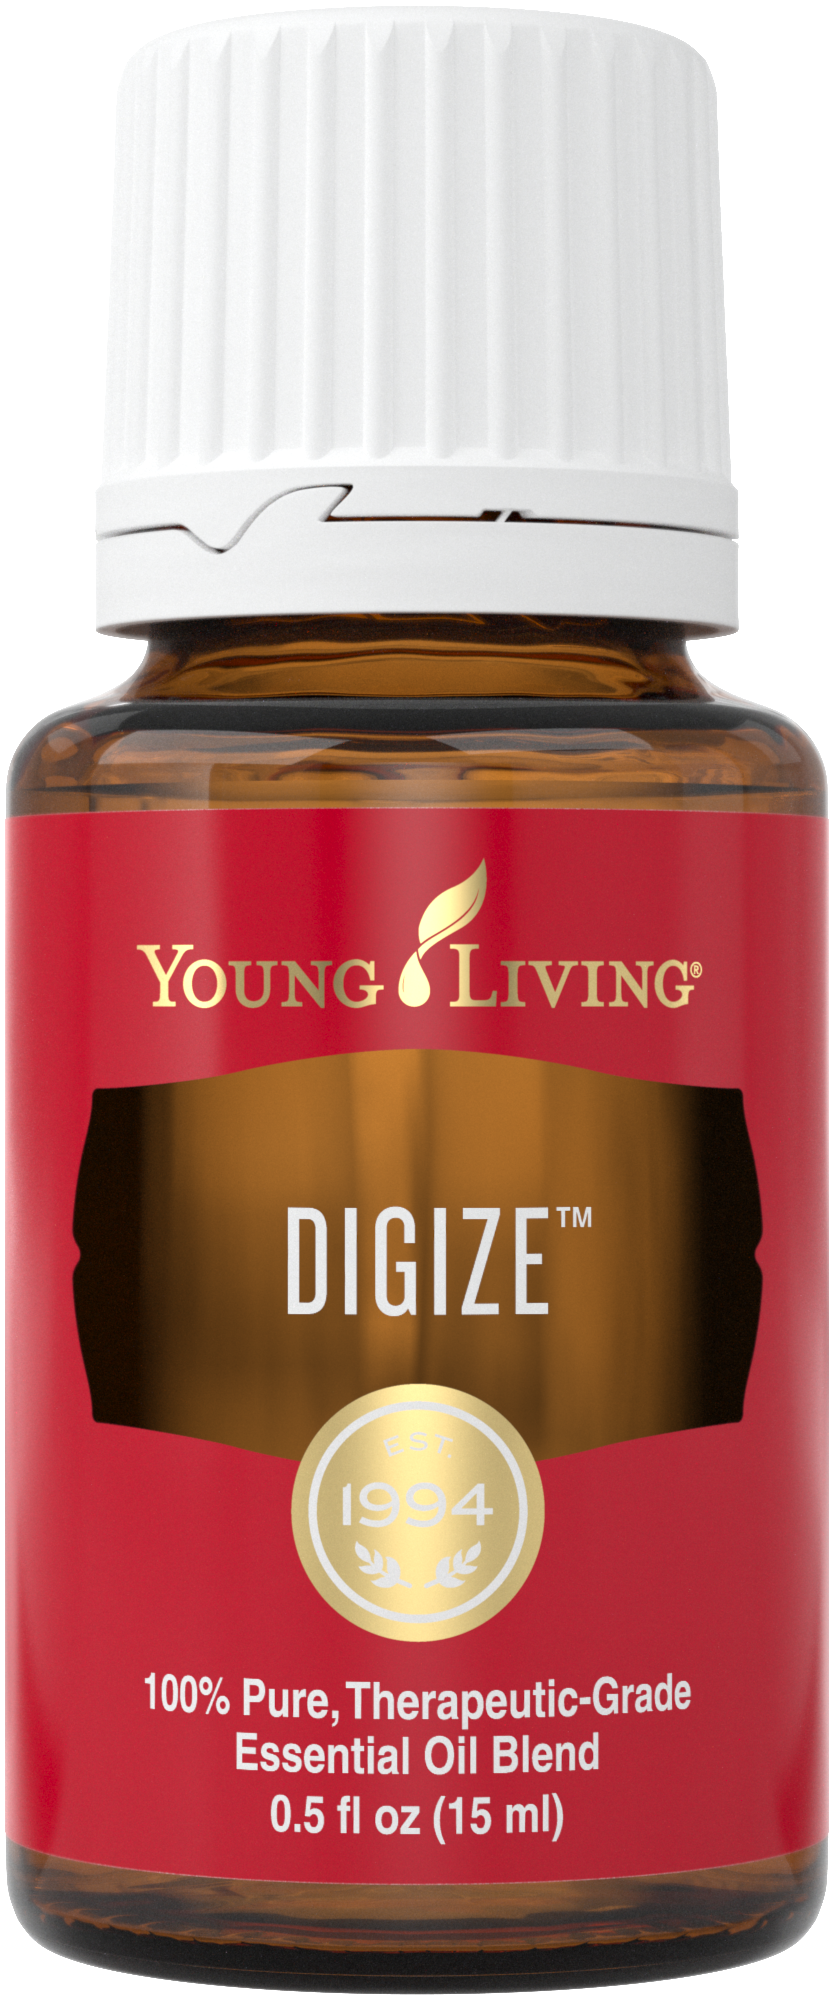 digize_15ml_silo_us_2016_23900380143_o.png